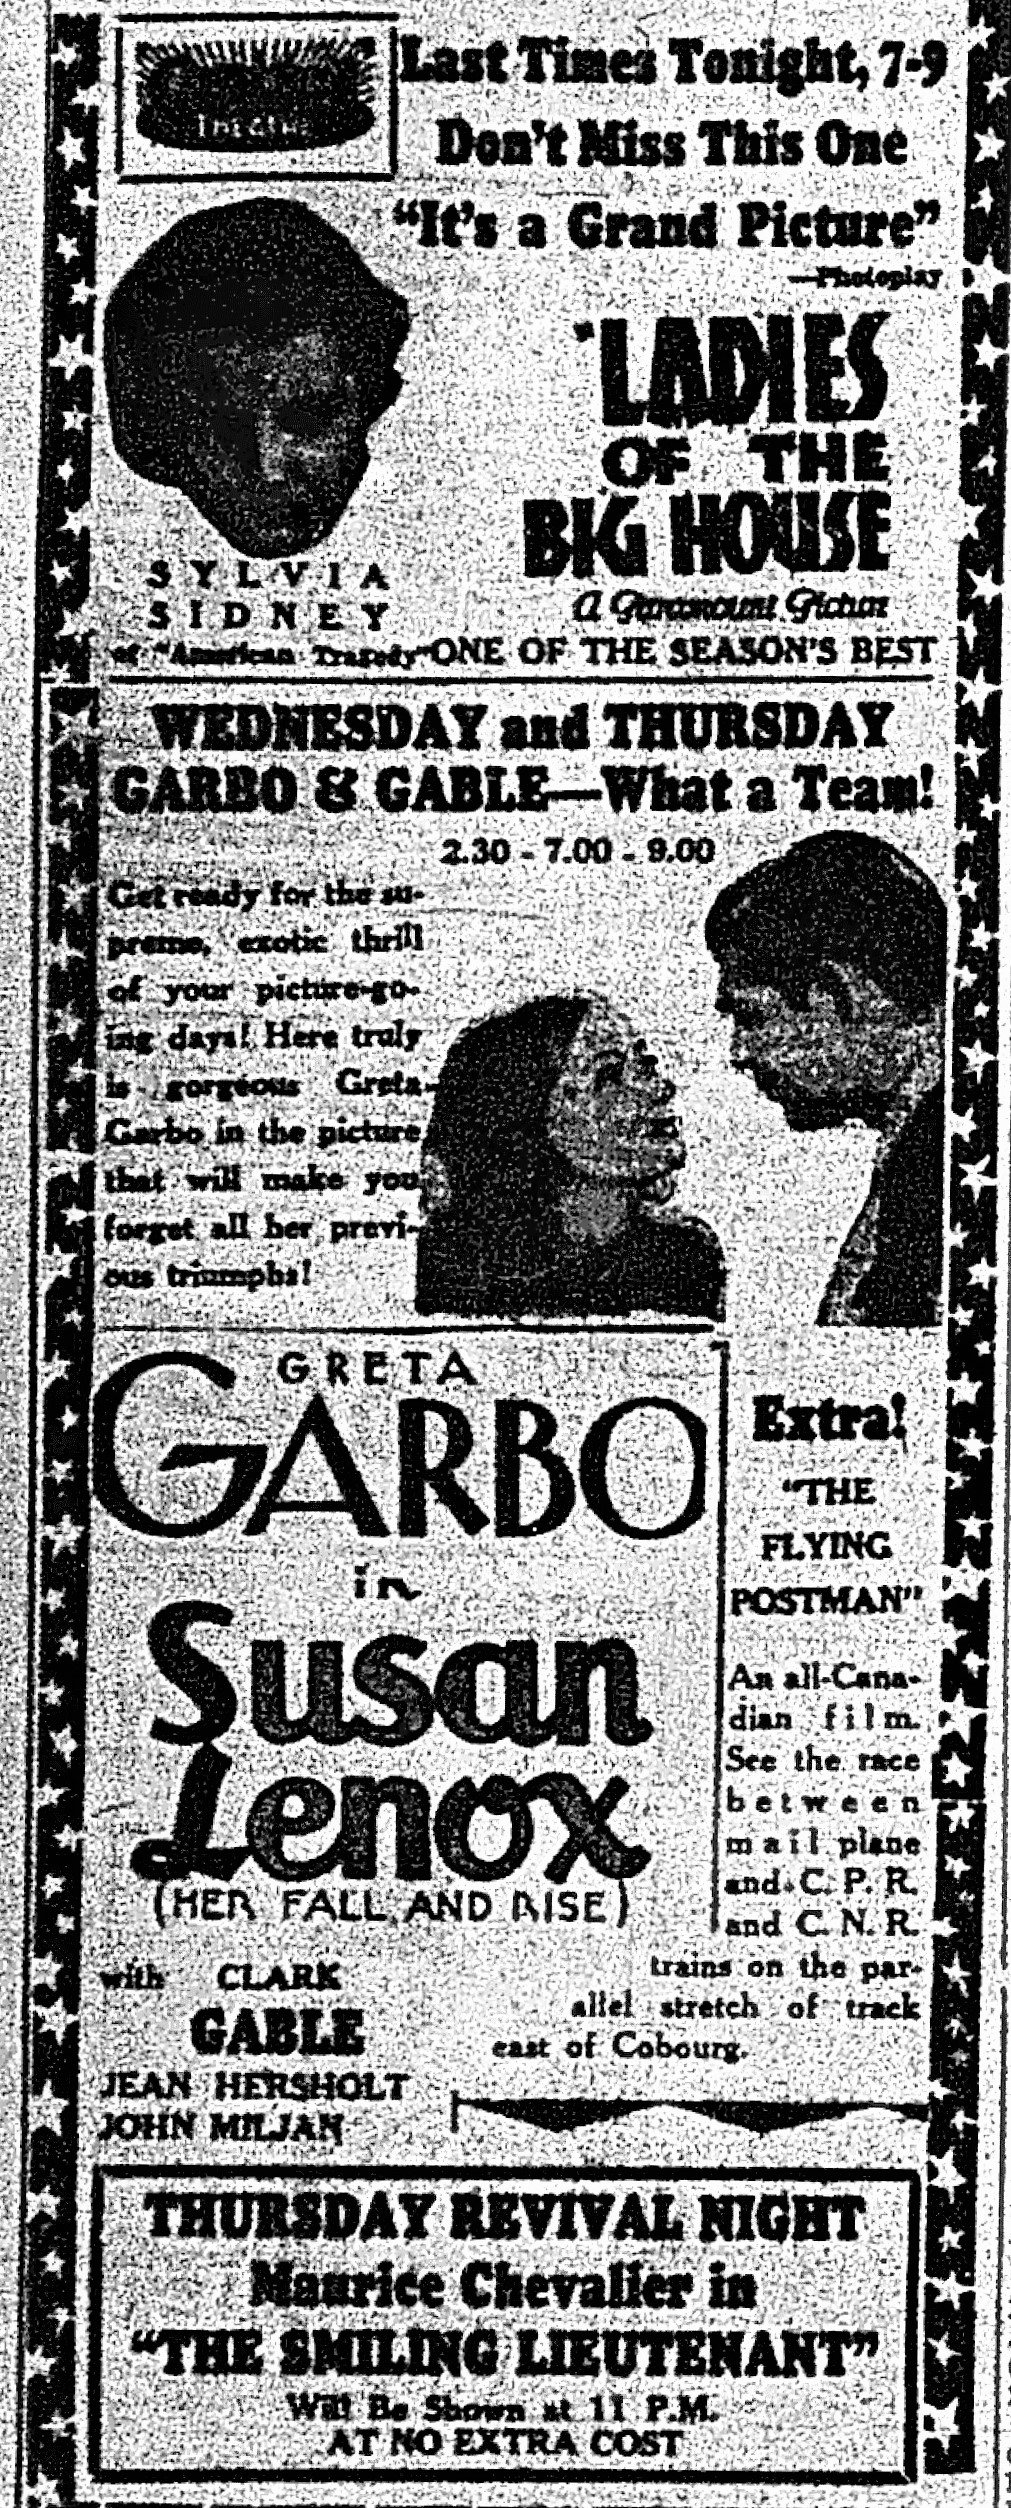 "Capitol Theatre ad,  Examiner , Feb. 16, 1932, p.9. Garbo and Gable — together: not so popular. And an ""all-Canadian film"" too."